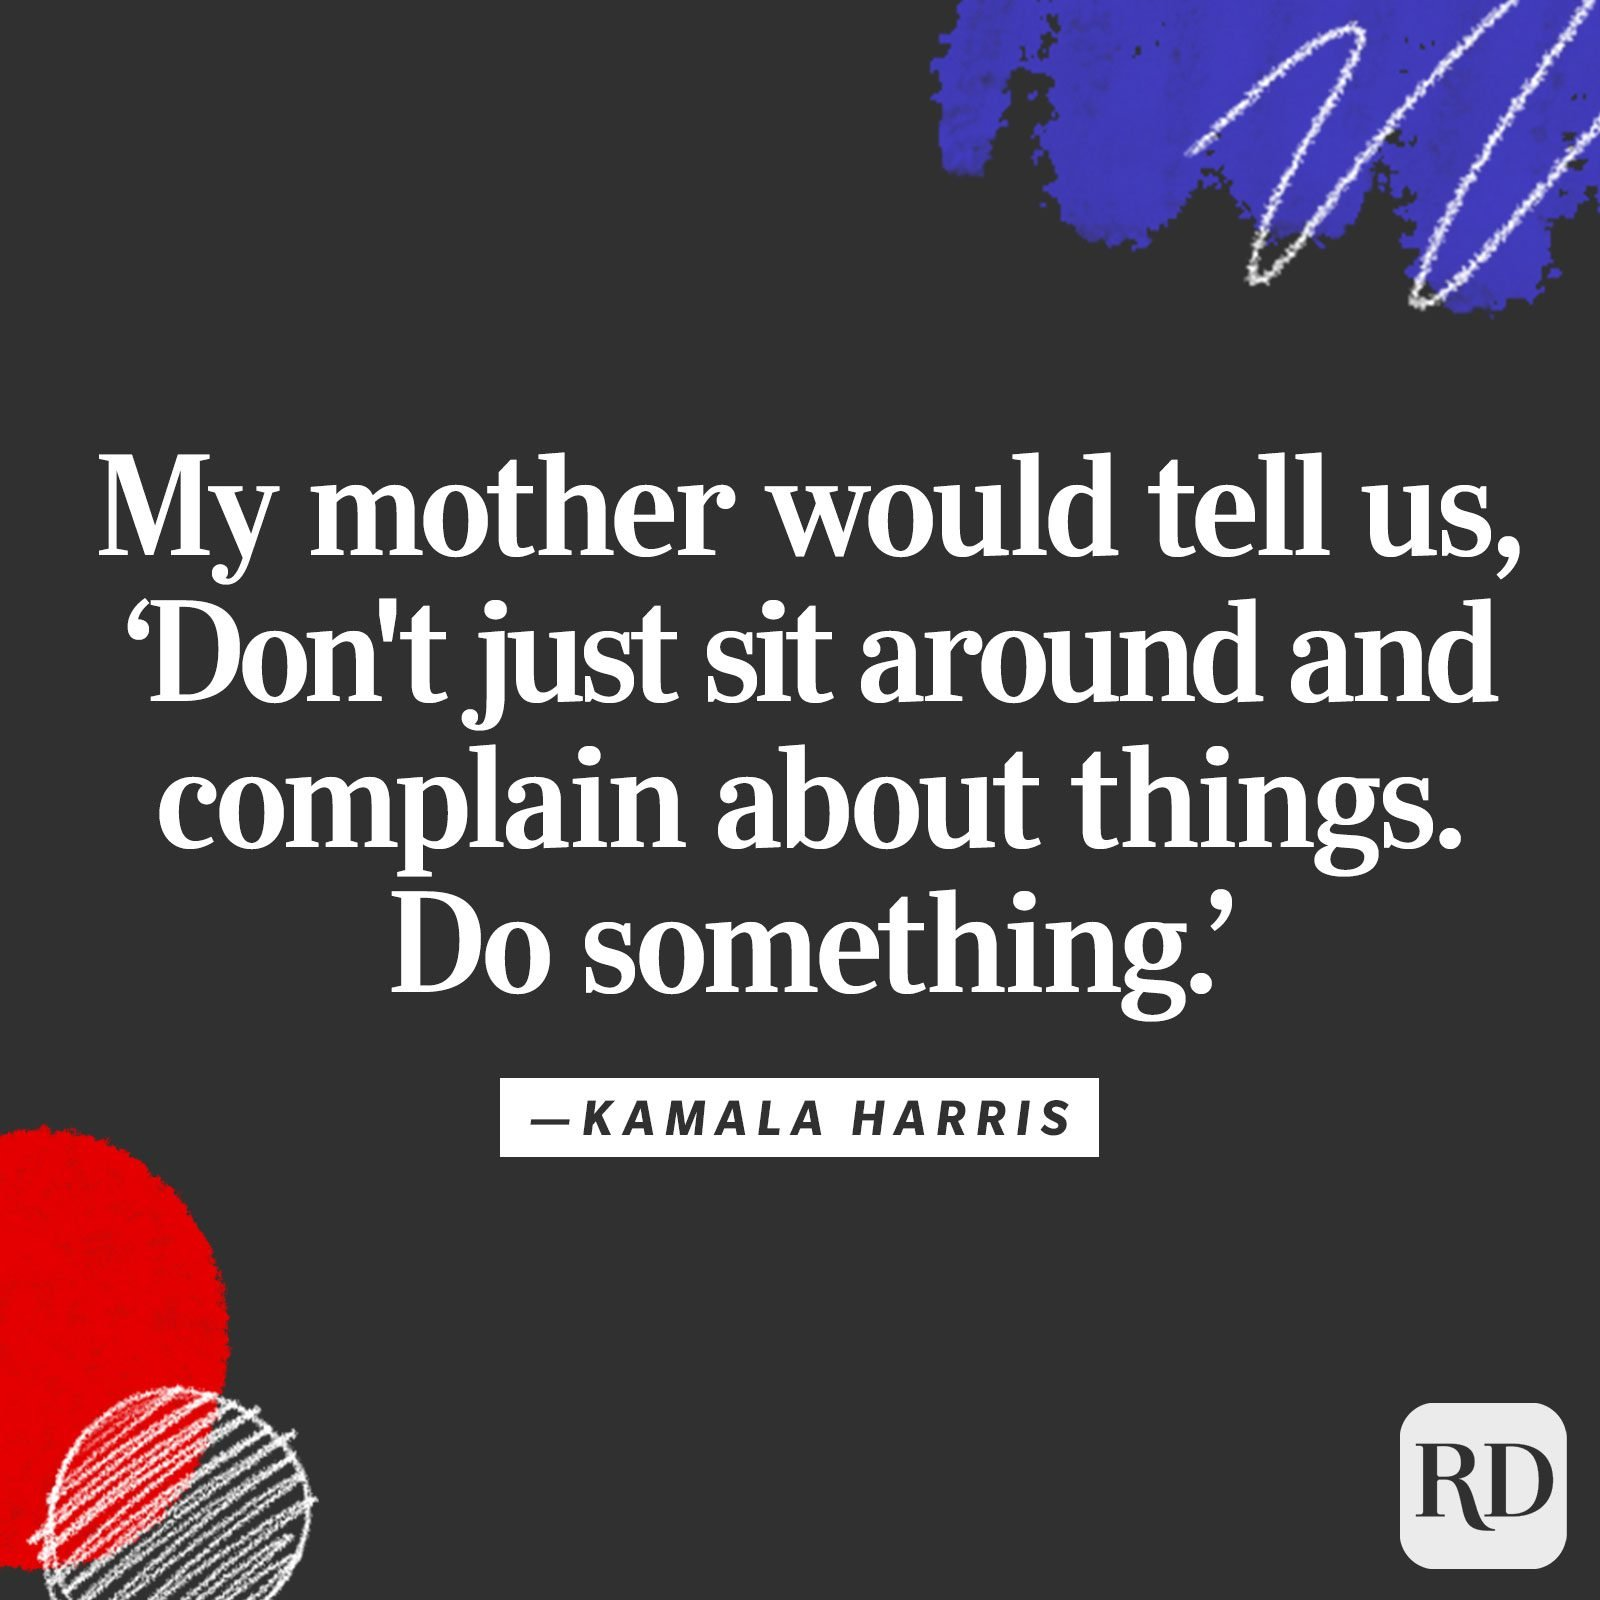 """My mother would tell us, 'Don't just sit around and complain about things. Do something.'"""